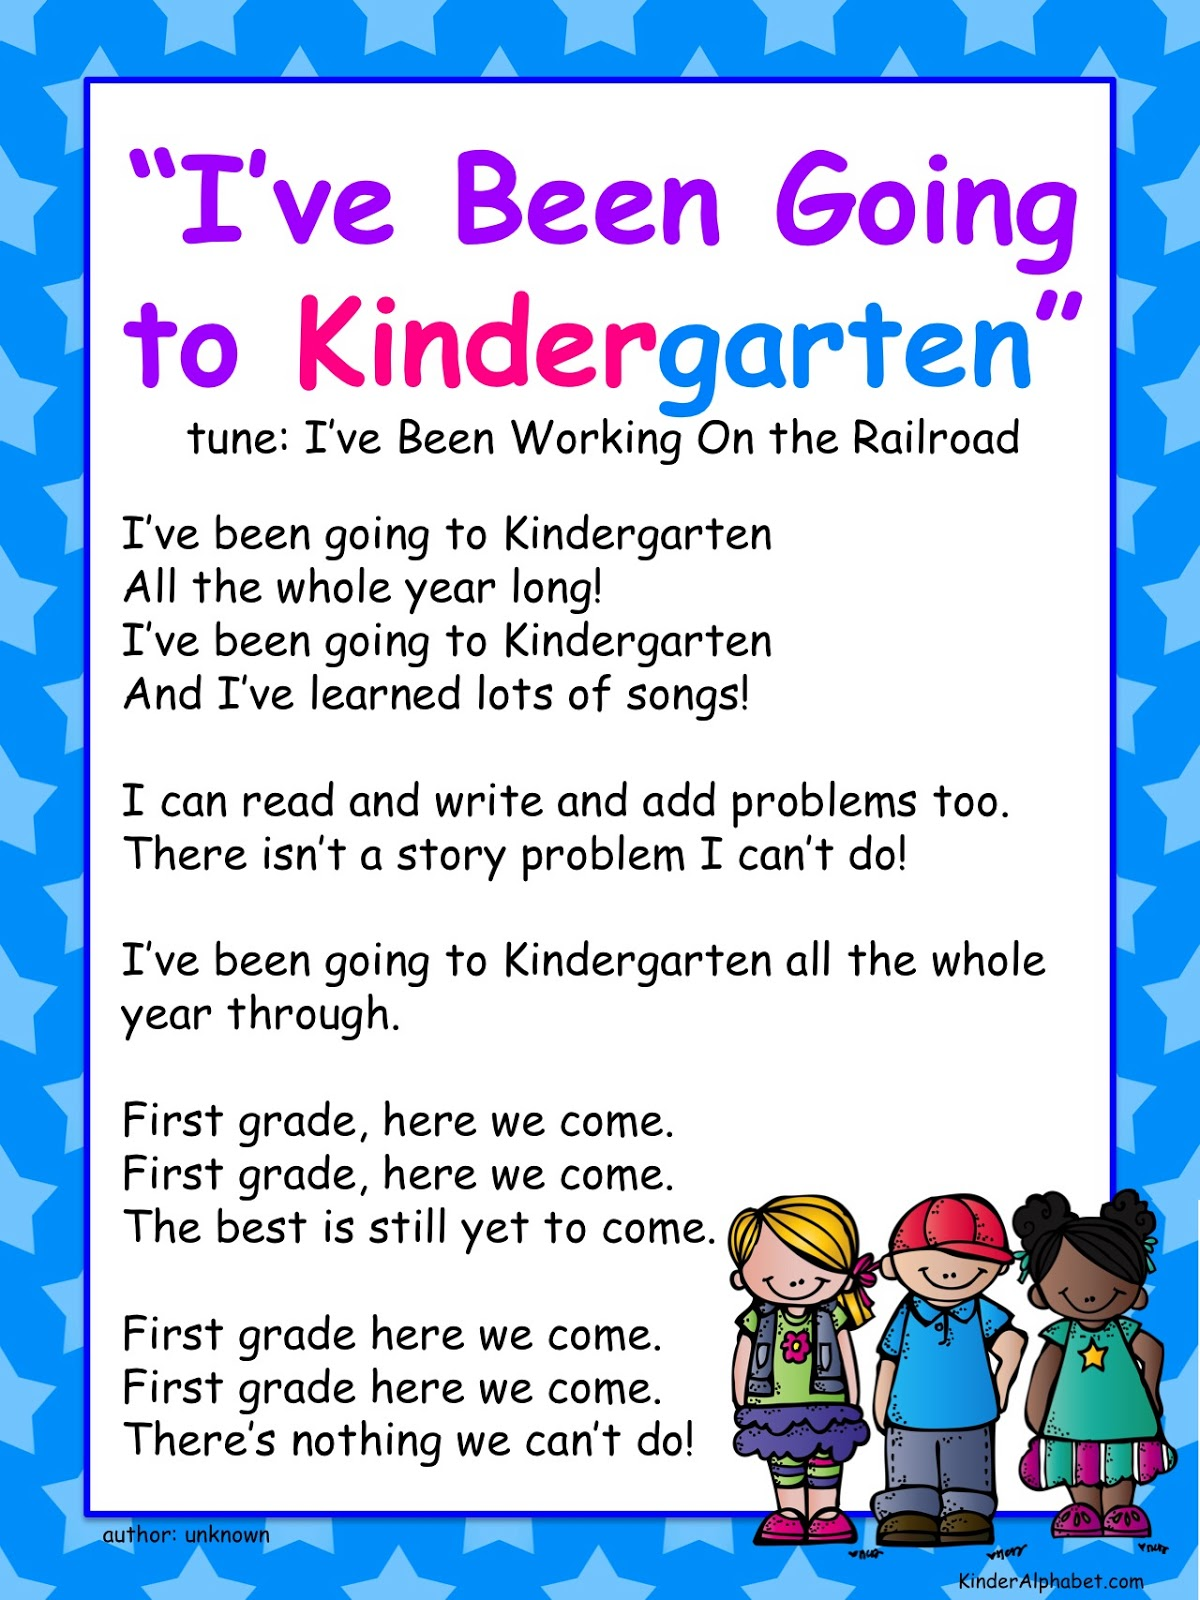 Quotes About Preschool Graduation on Preschool Graduation Quotes Dr Seuss 3